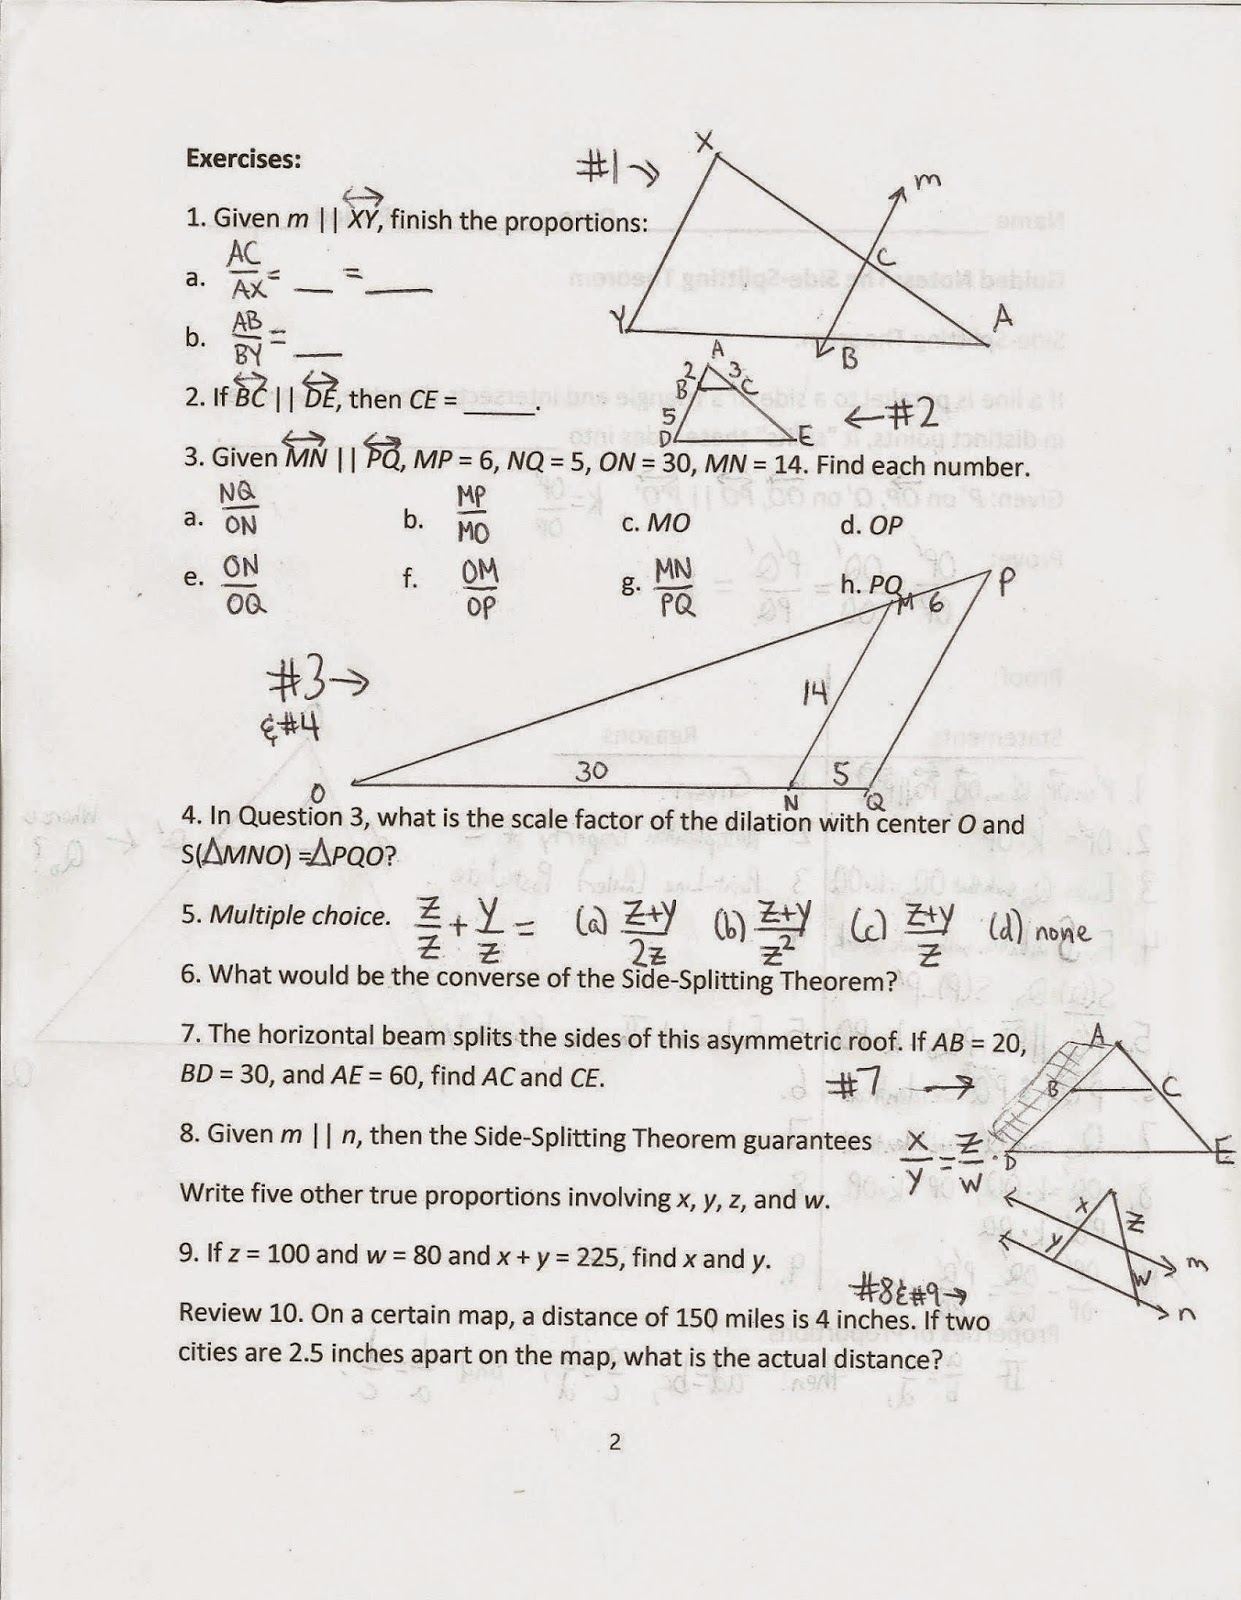 kung will continue with geometry paradoxes in his next lecture